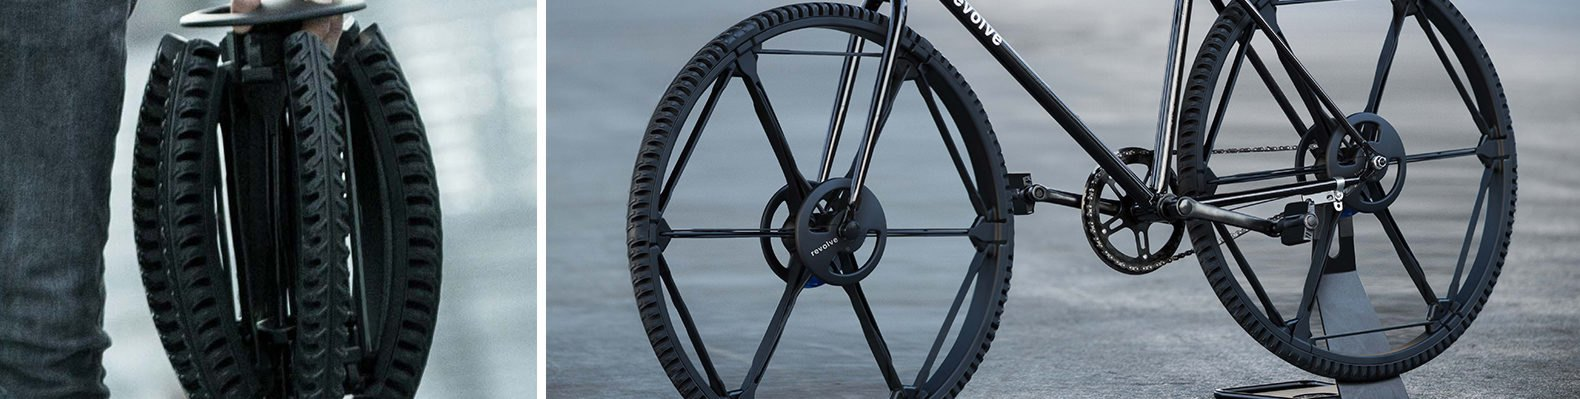 Revolve wheel, foldable wheel, airless wheel, urban design, wheel mobility, new wheel design, puncture proof wheel, bicycle tires, foldable tires, bicycle parts, green transportation, wheelchair wheels, portable bicycle wheels, airless wheels,